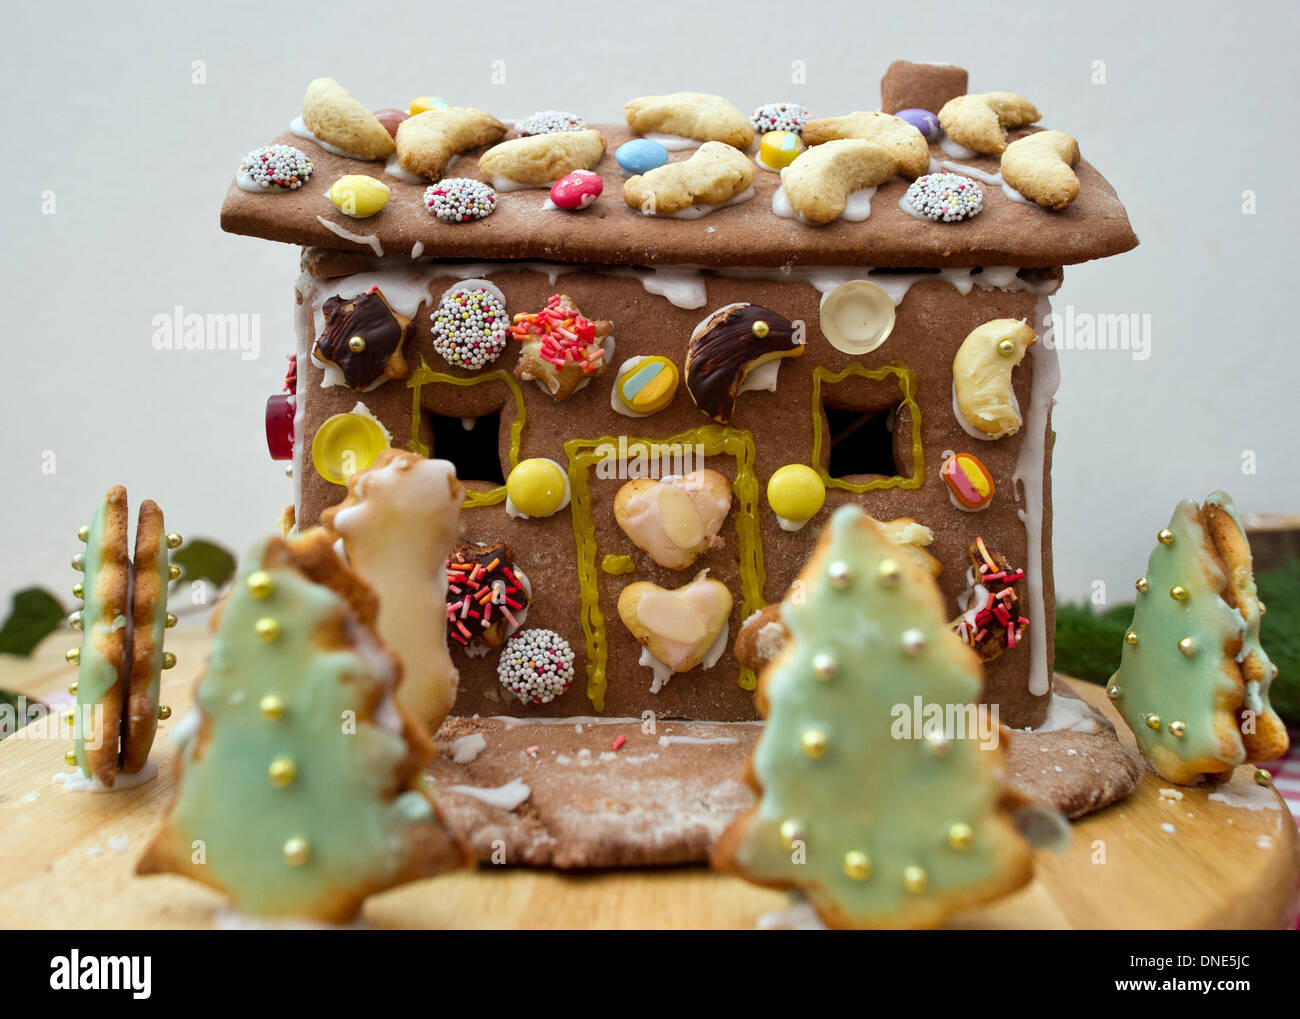 Sauen, Germany. 14th Dec, 2013. A gingerbread house is seen at the August Bier Foundation in Sauen, Germany, 14 December 2013. Photo: Patrick Pleul/dpa/Alamy Live News - Stock Image